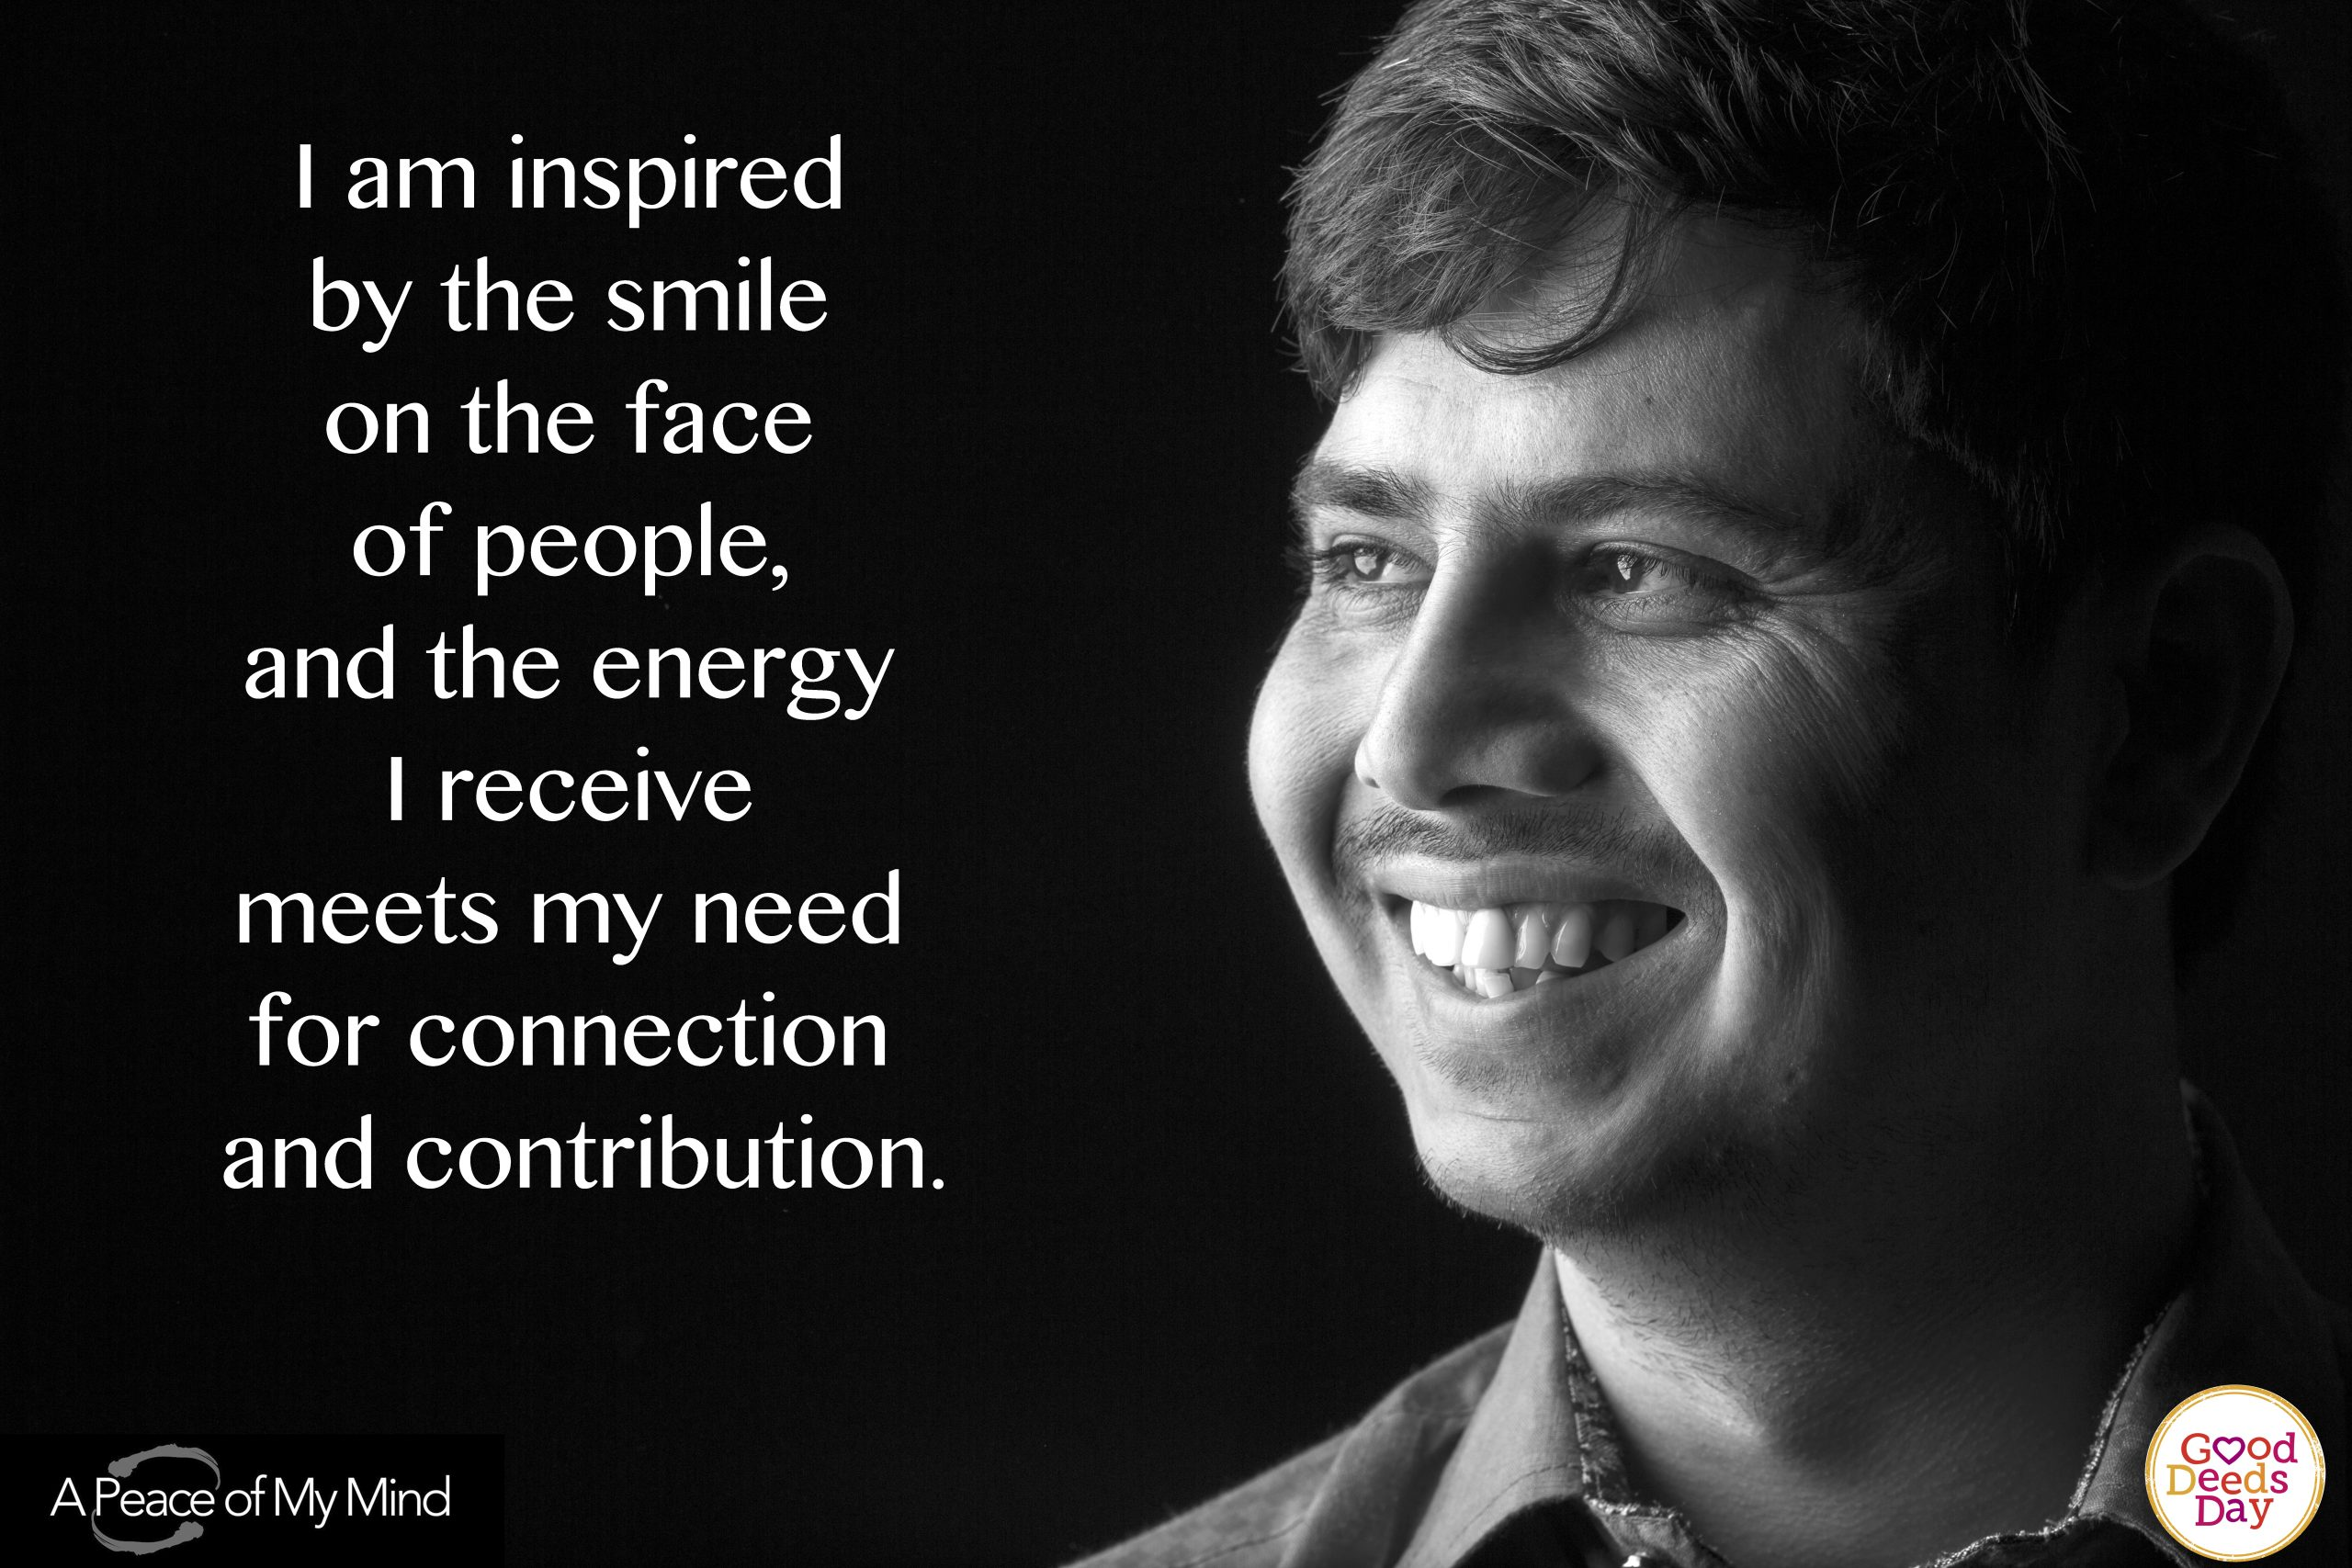 I am inspired by the smile on the face of people, and the energy I receive meets my need for connection and contribution.